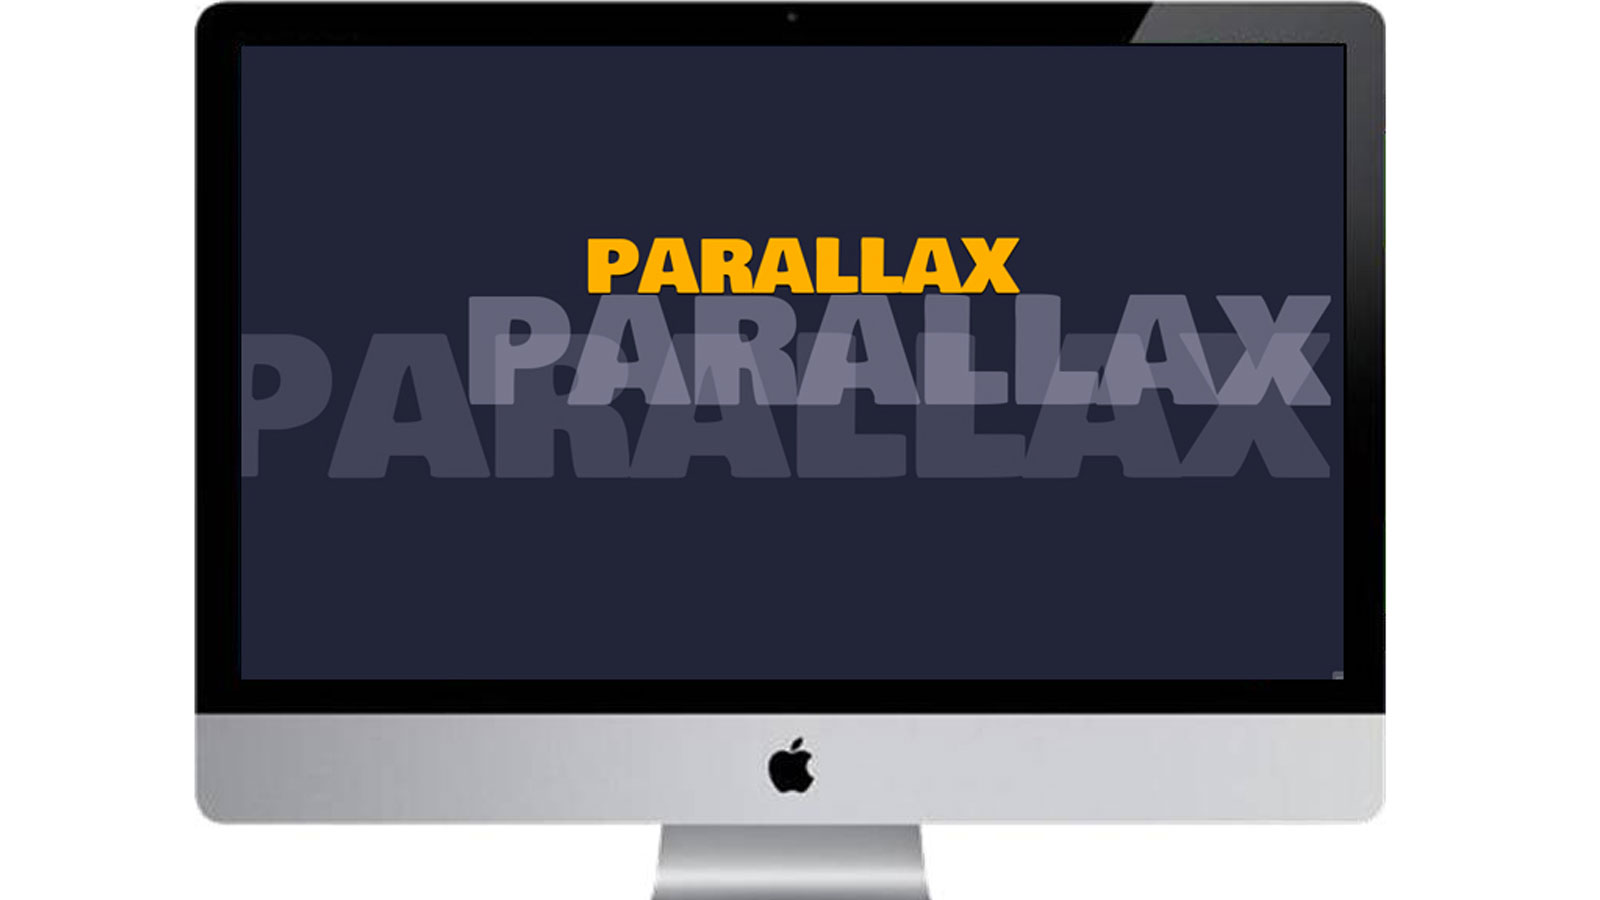 Code Free Parallax Scrolling Animator - A Closed Beta Invitation for WDD Readers